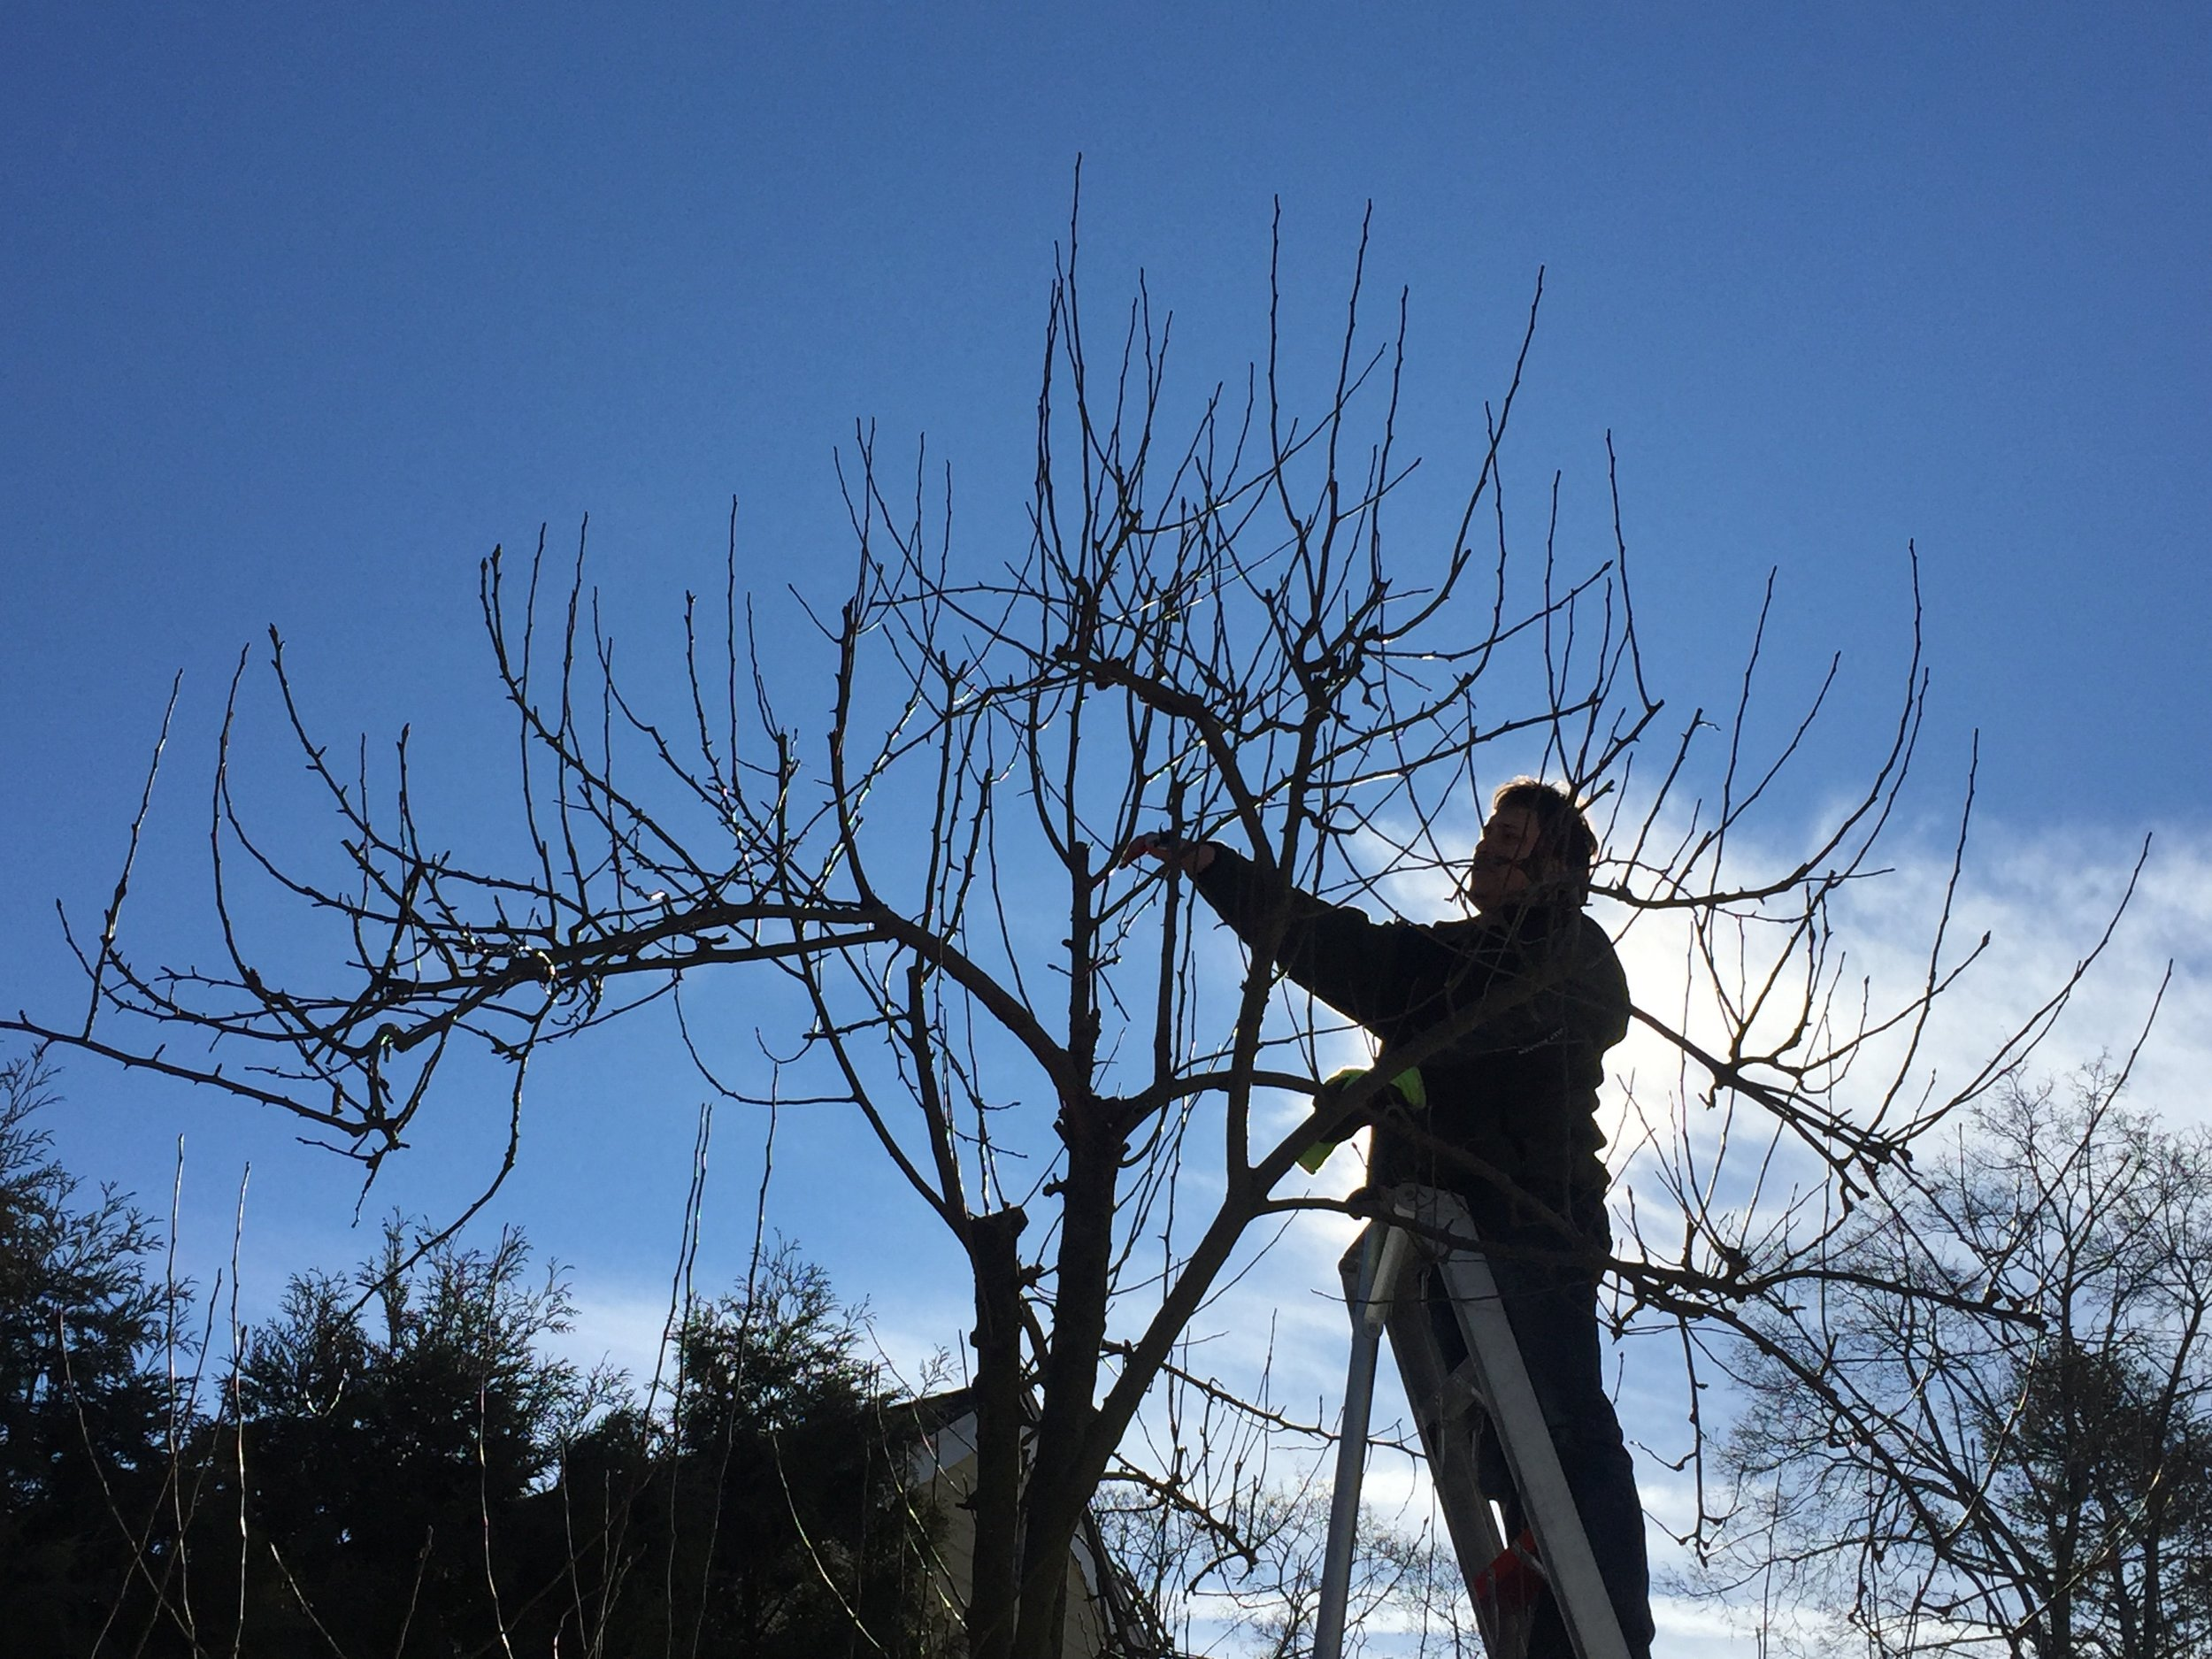 Orchard_Pear_Tree_Winter_Pruning.jpeg